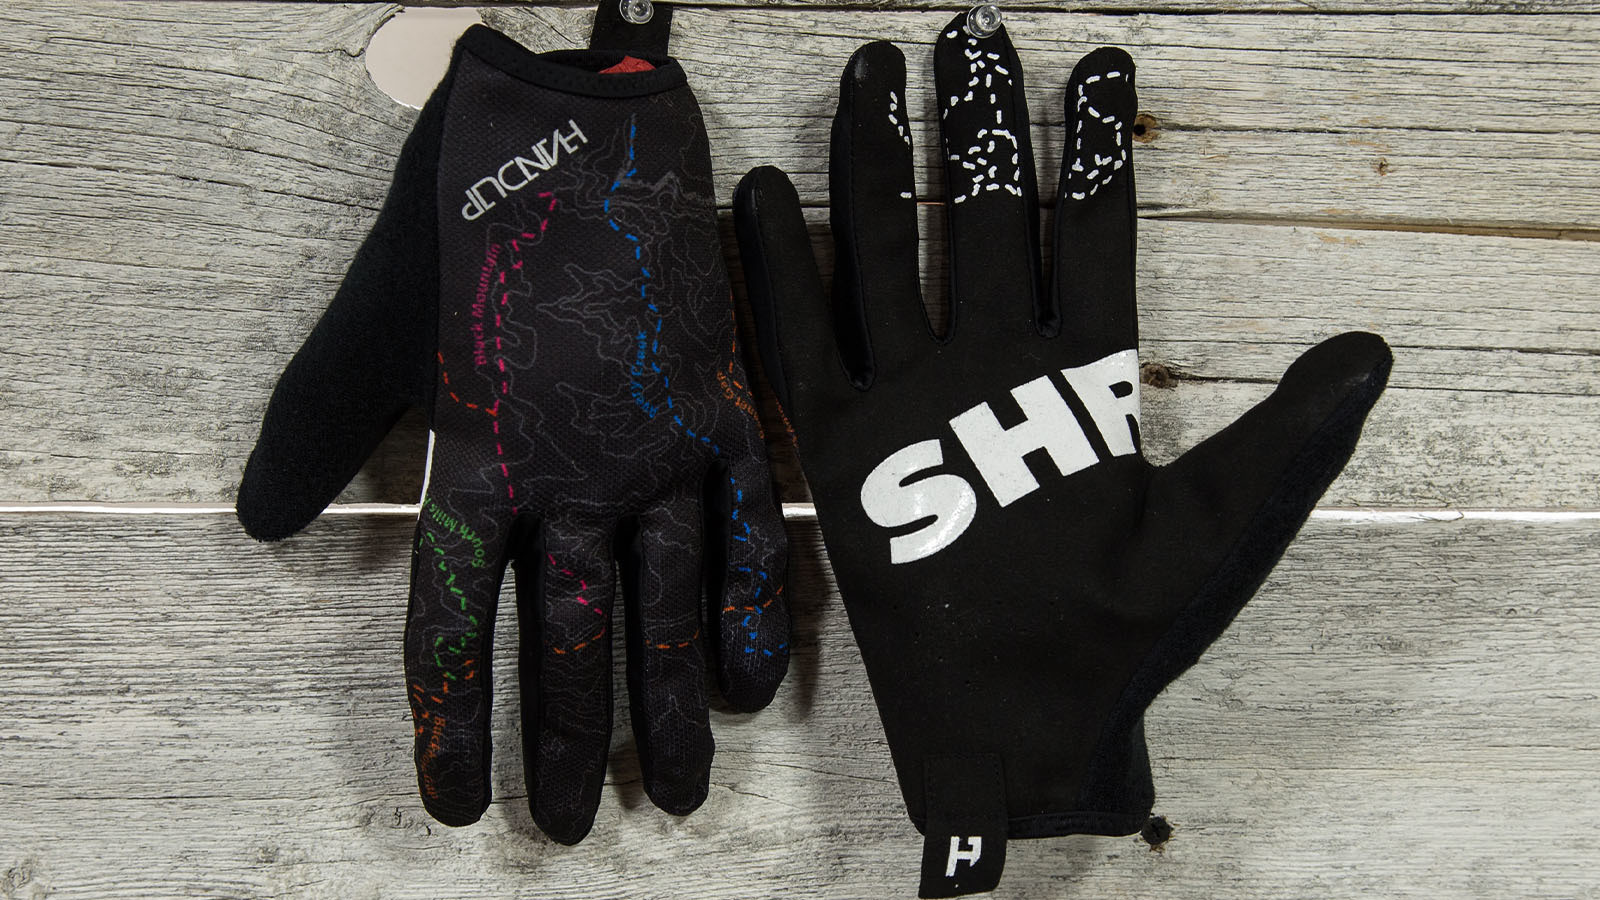 Who's Ready to Shred? Handup Gloves Are